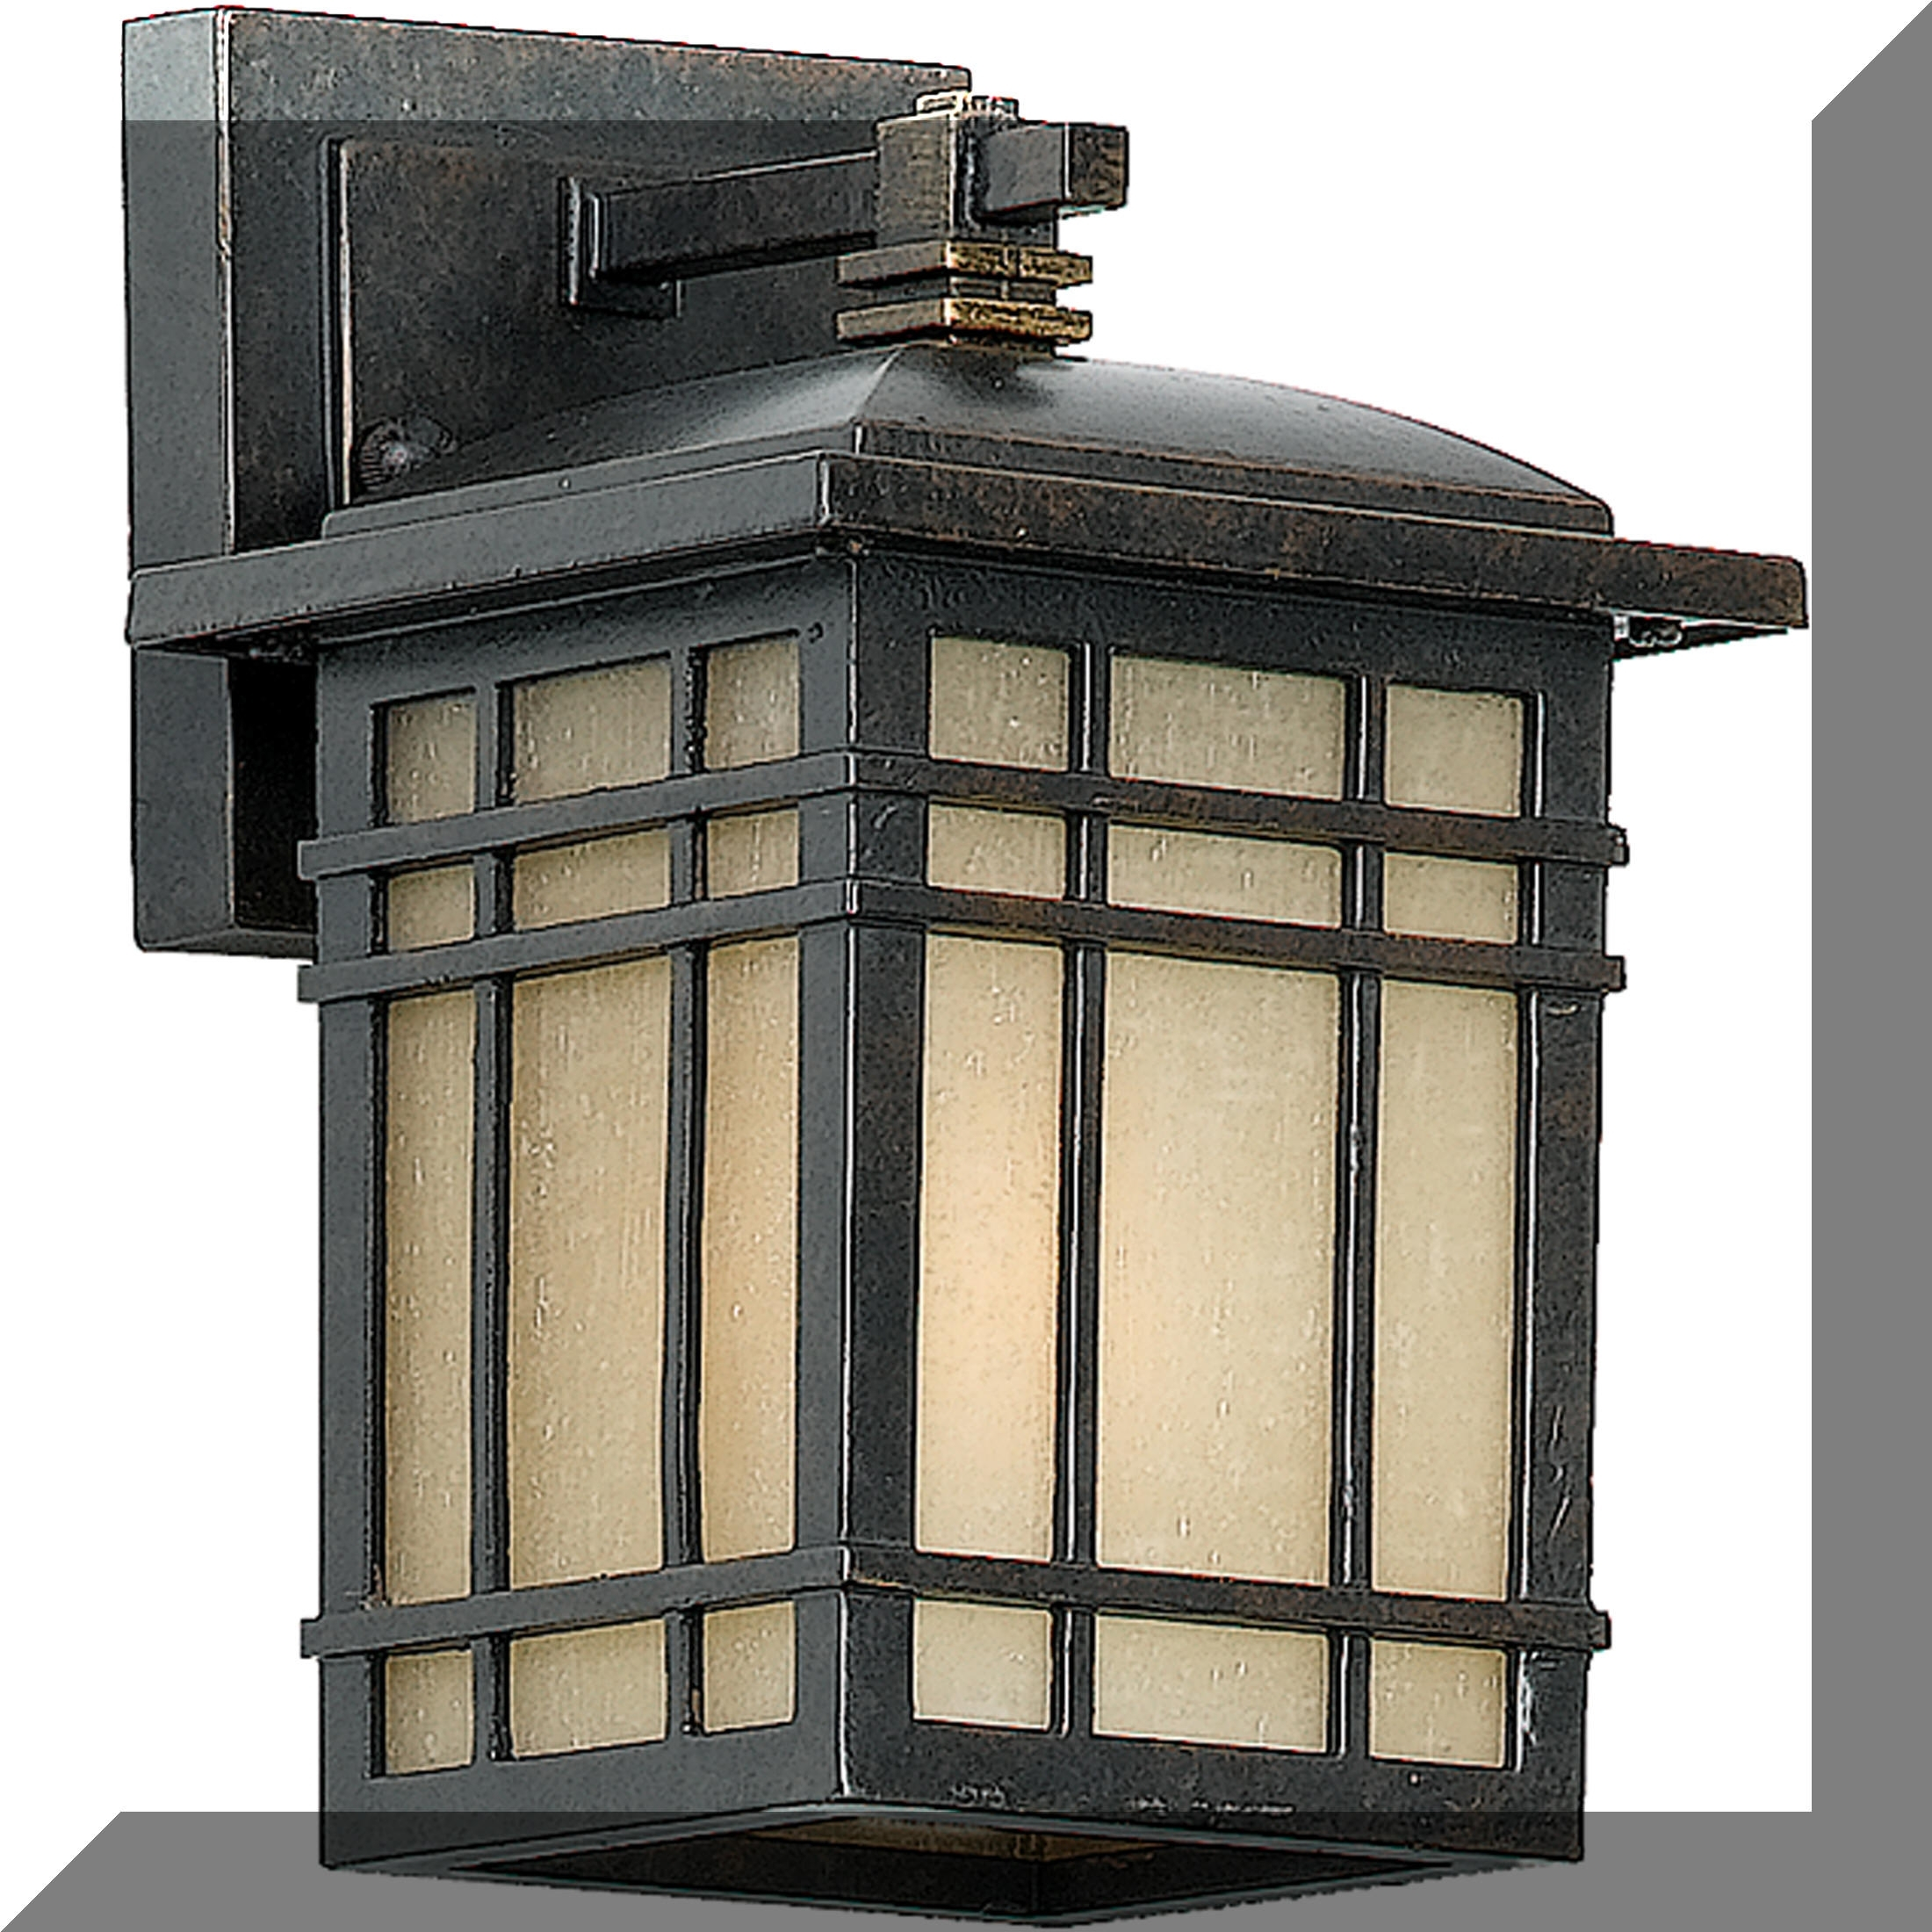 Japanese And Oriental Outdoor Lighting Fixtures regarding Outdoor Lighting Japanese Lanterns (Image 9 of 20)